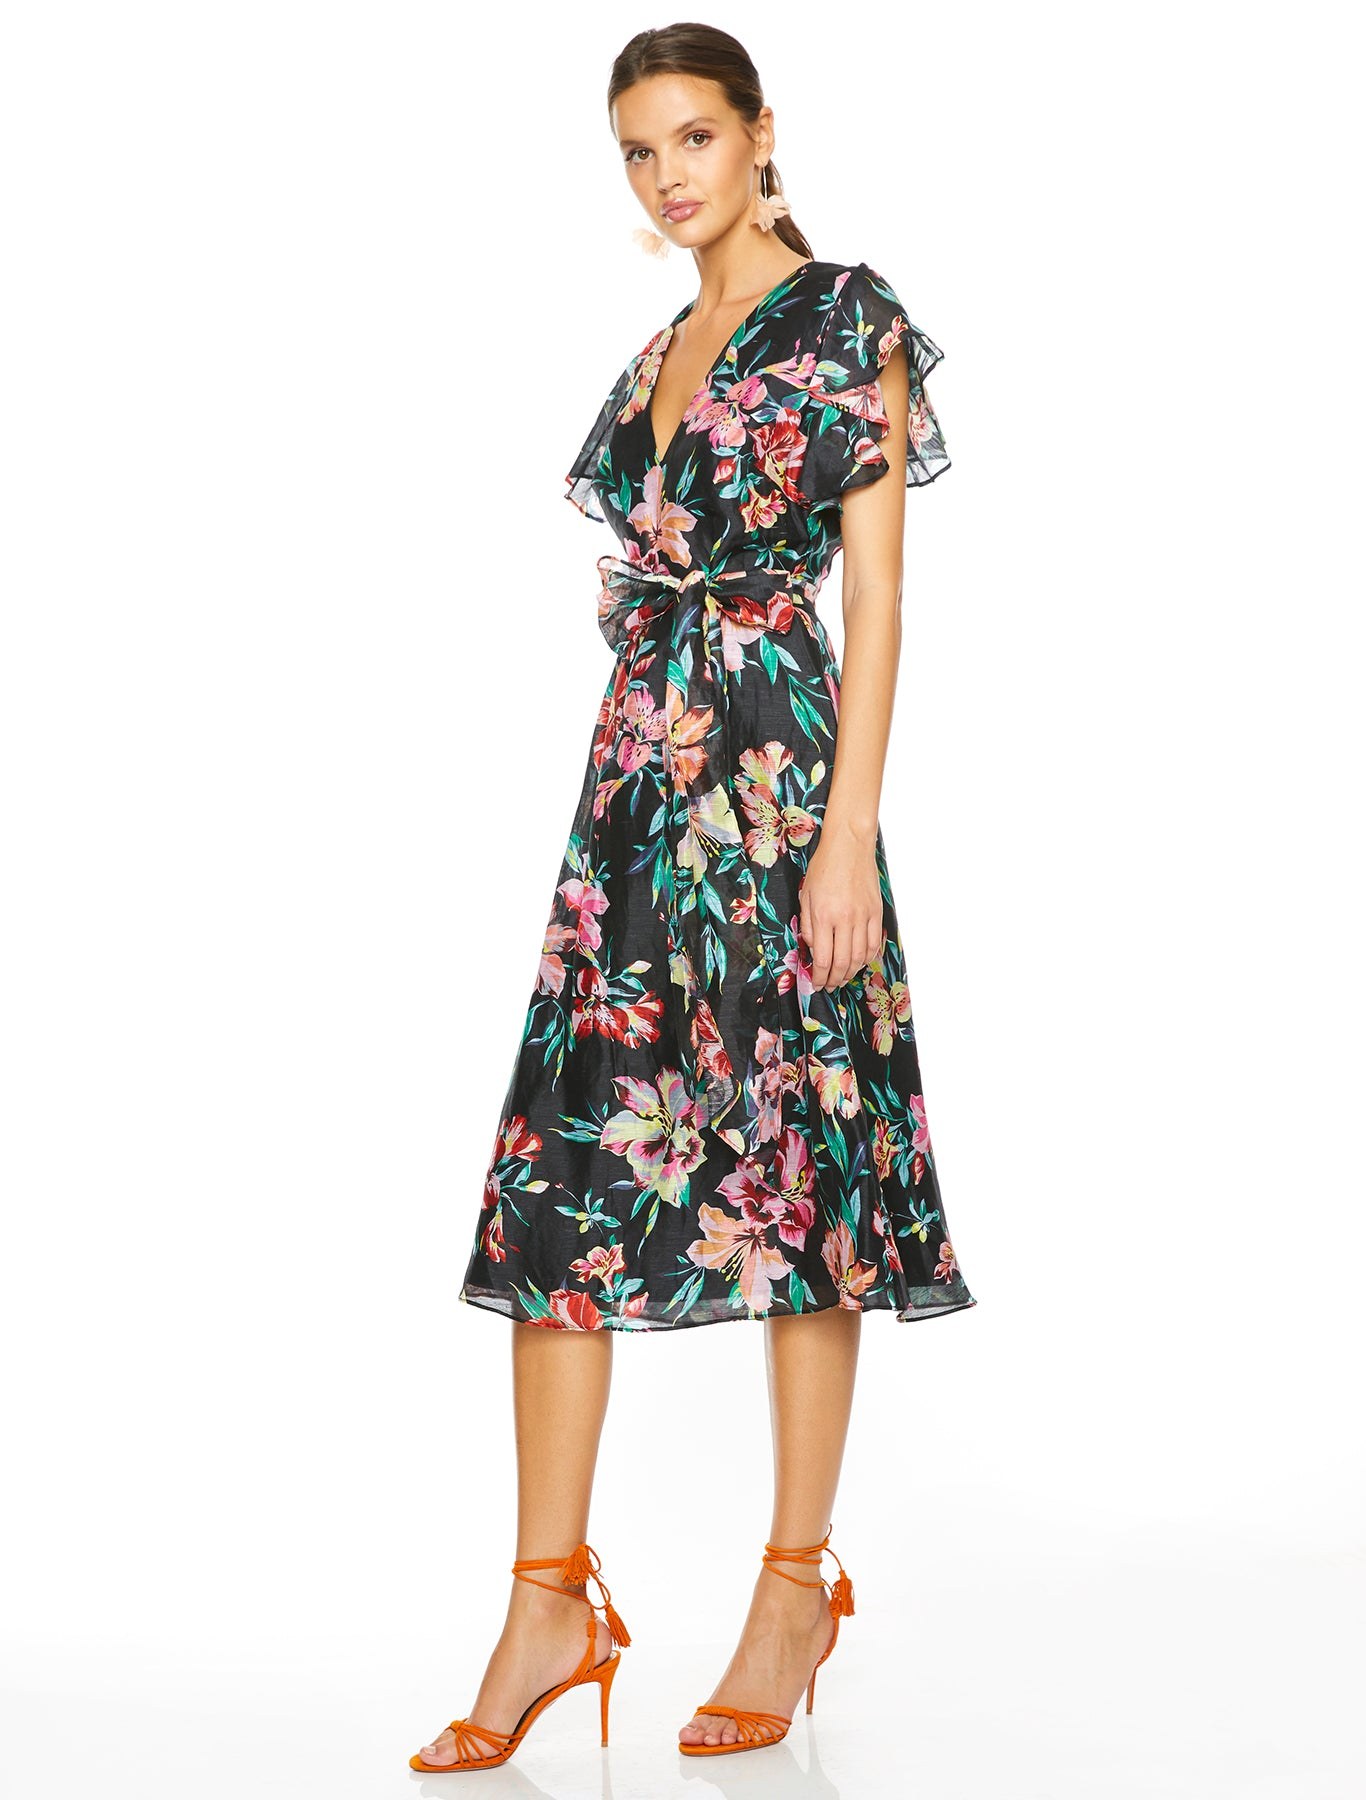 CABANA NIGHTS MIDI DRESS